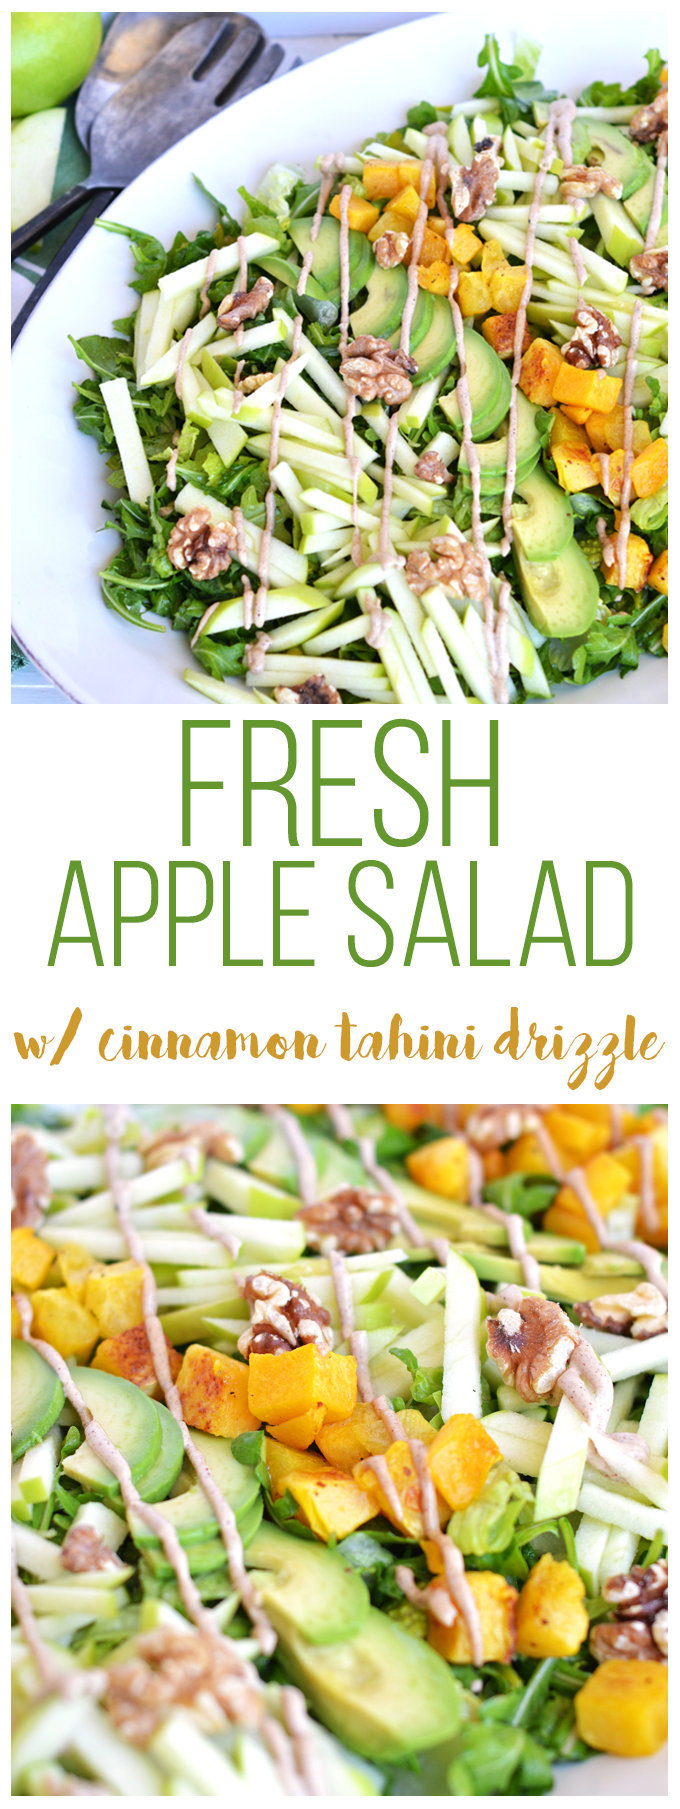 This Fresh Apple Salad with Cinnamon Tahini Drizzle is packed with apples, roasted butternut squash, avocado, walnuts, dressed with apple cider vinaigrette and drizzled with cinnamon tahini sauce! Whole 30 and paleo approved!